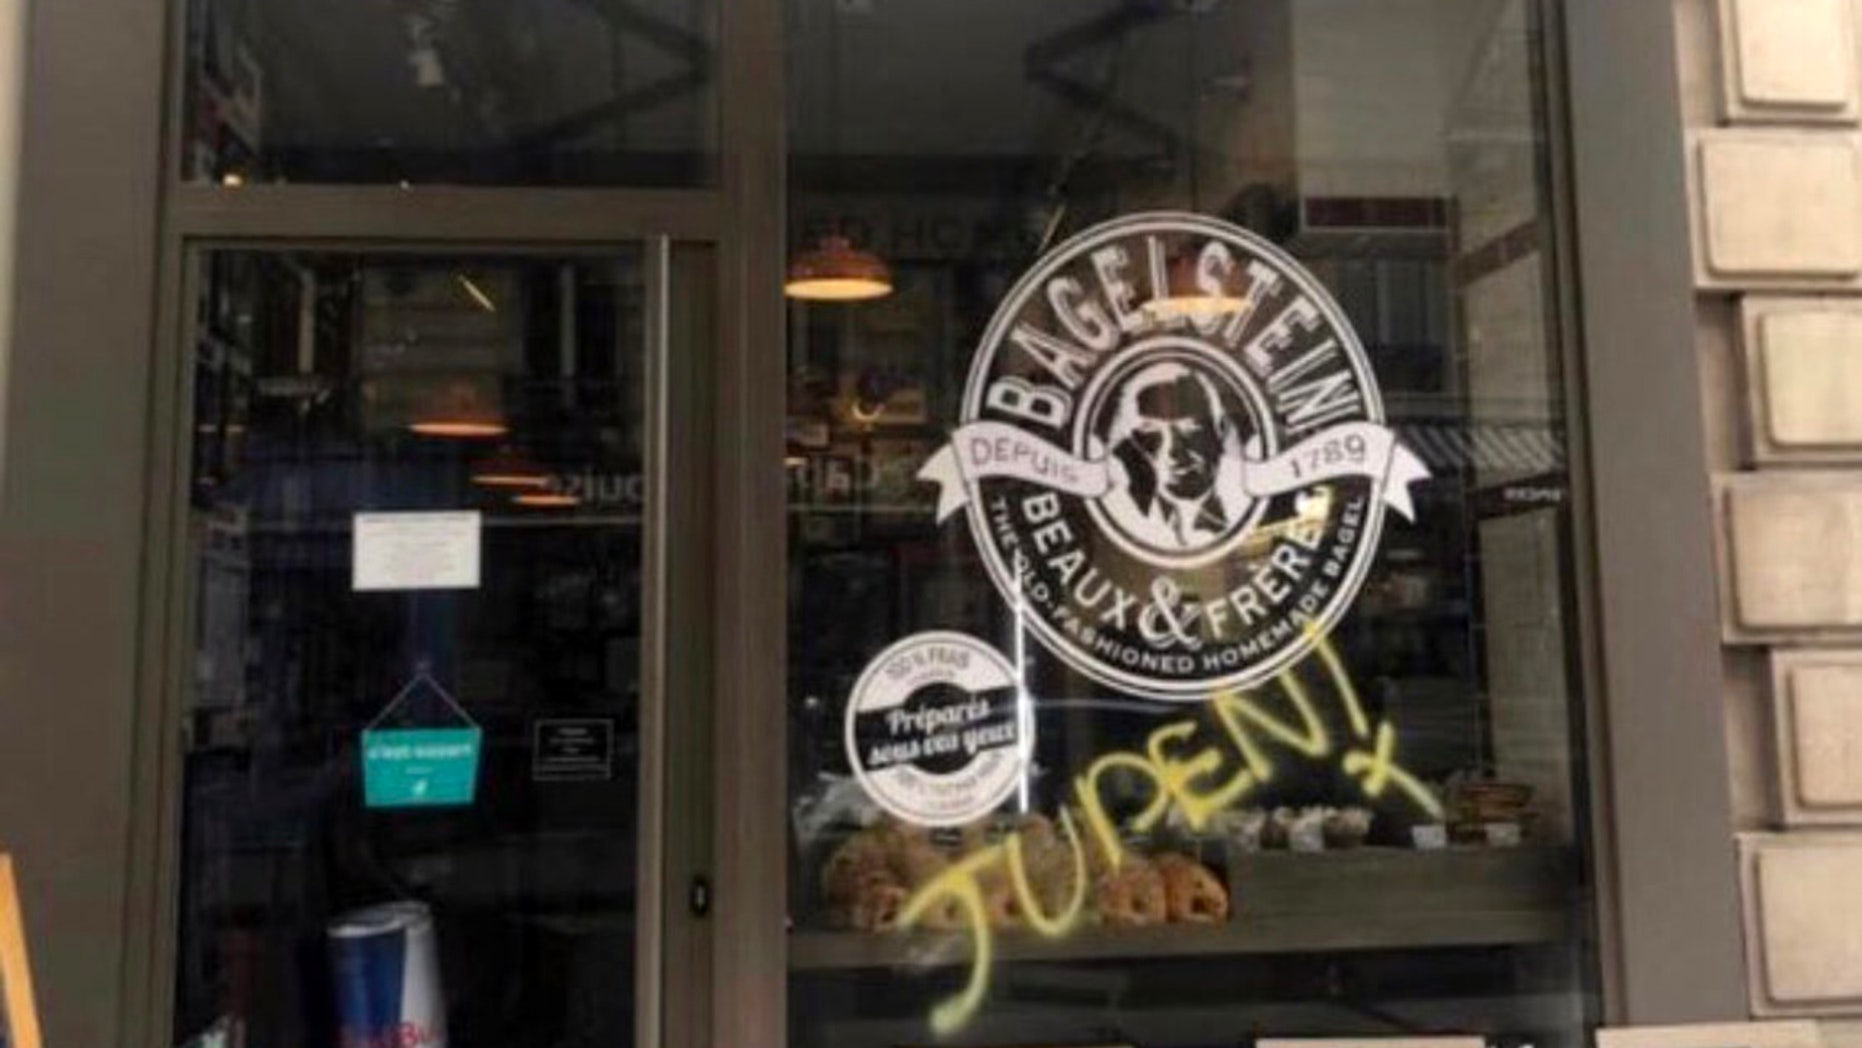 Anti-Semitic graffiti was discovered on a bagel shop in Paris on Saturday, as police forces and anti-government protesters clashed in other parts of the city.